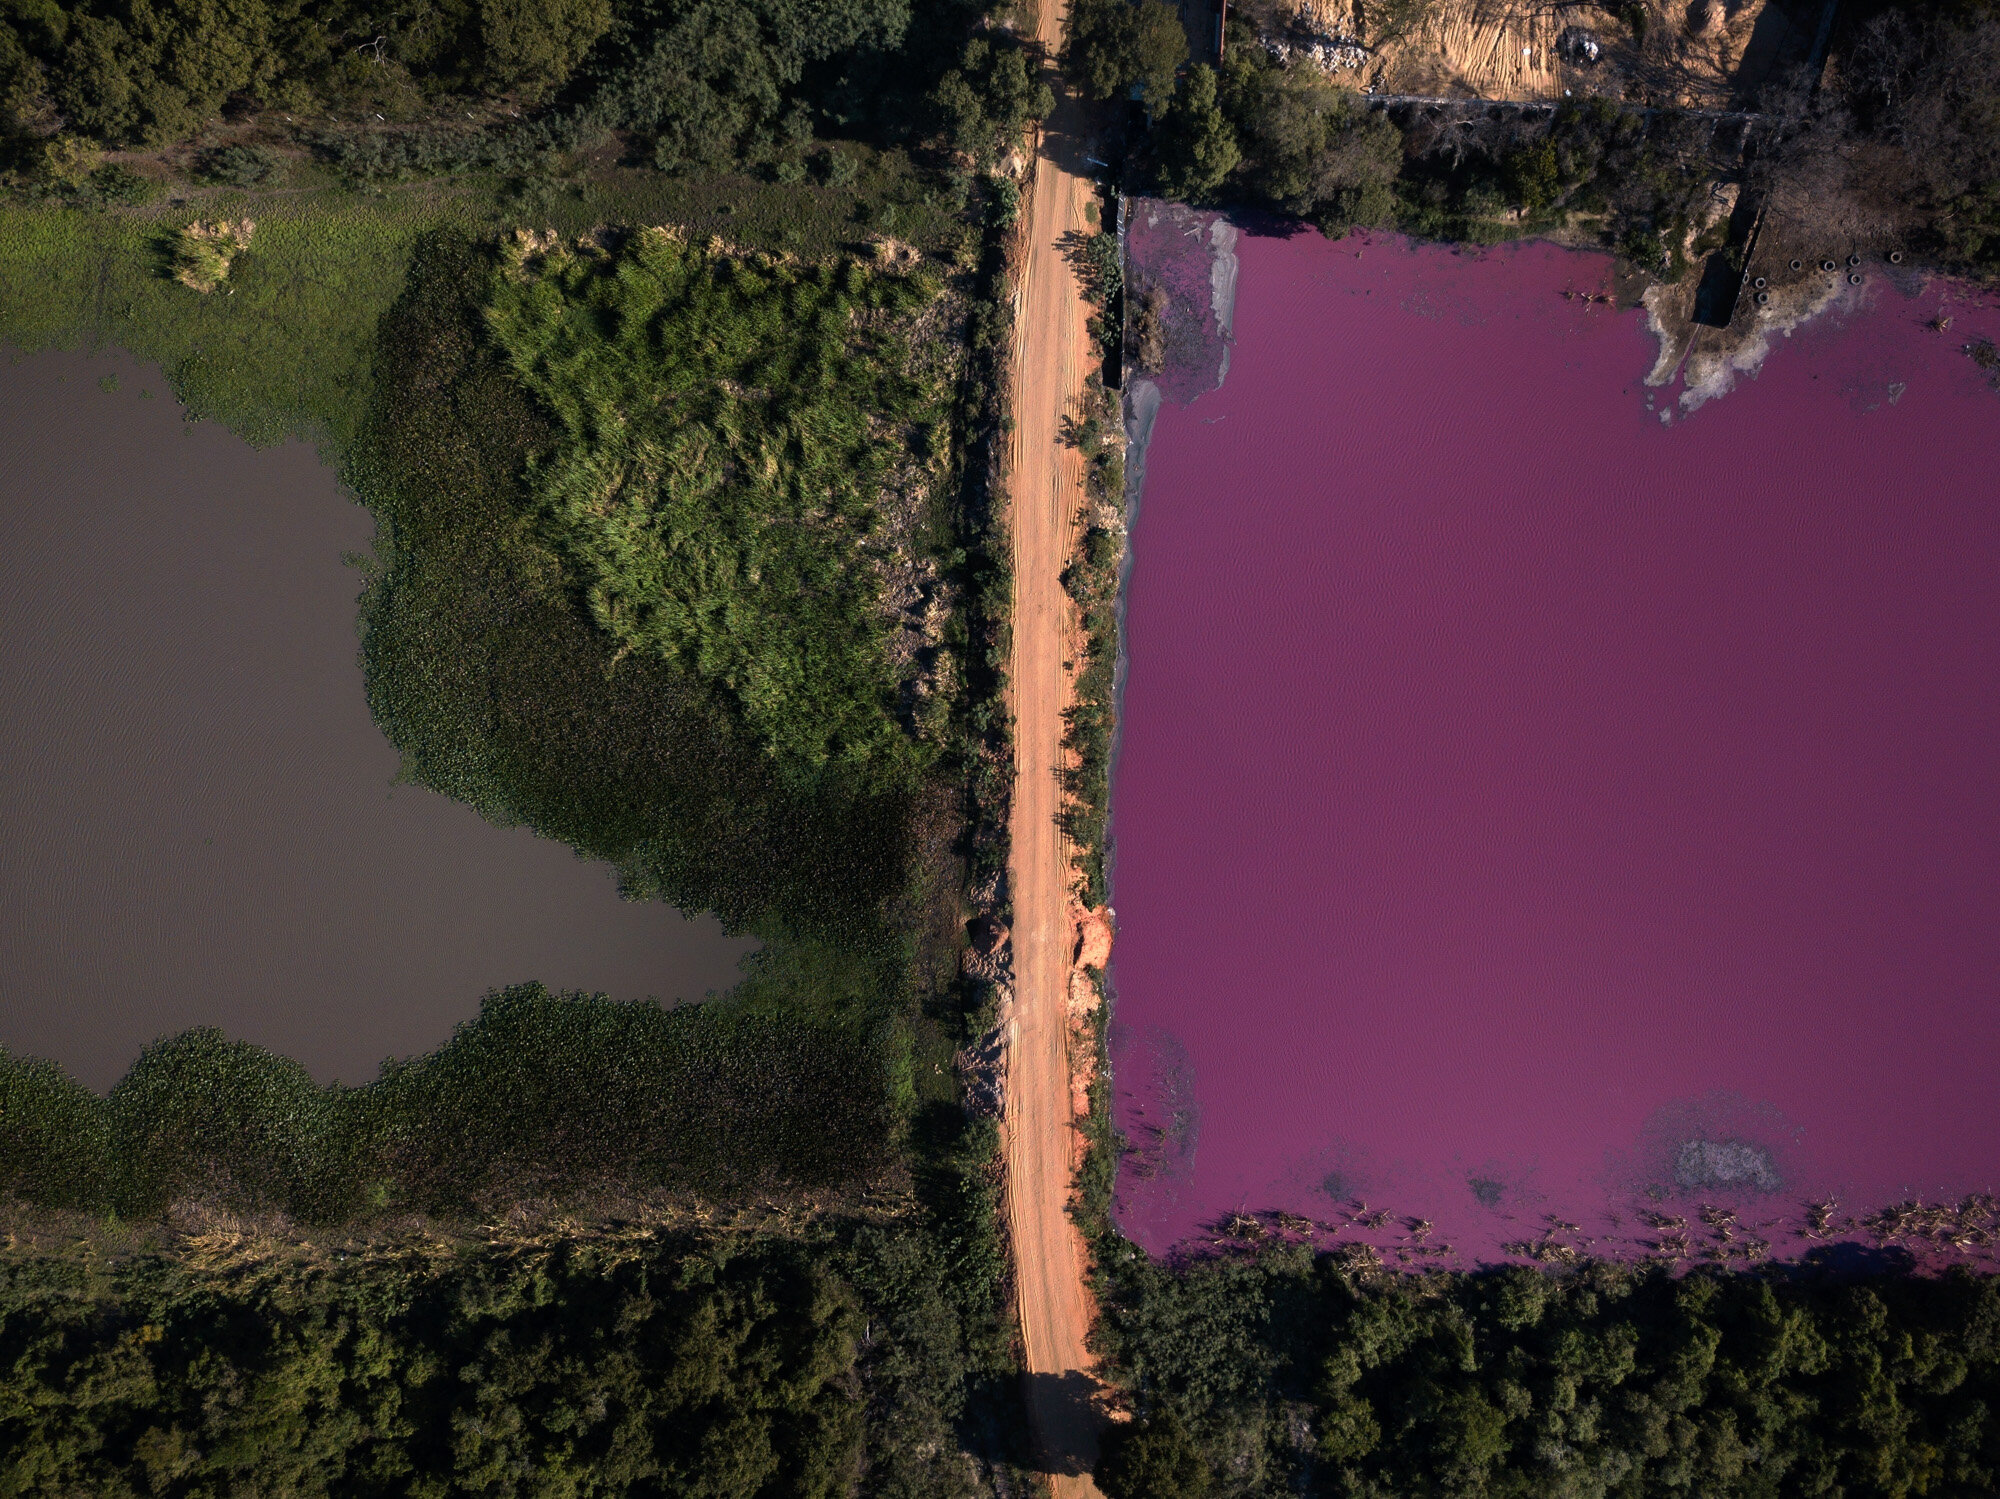 A road divides the Cerro Lagoon, where the water at right is colored and the Waltrading S.A. tannery stands on the bank, top right, in Limpio, Paraguay, on Aug. 5, 2020. According to Francisco Ferreira, a technician at the National University Multidisciplinary Lab, the color of the water is due to the presence of heavy metals like chromium, commonly used in the tannery process. (AP Photo/Jorge Saenz)